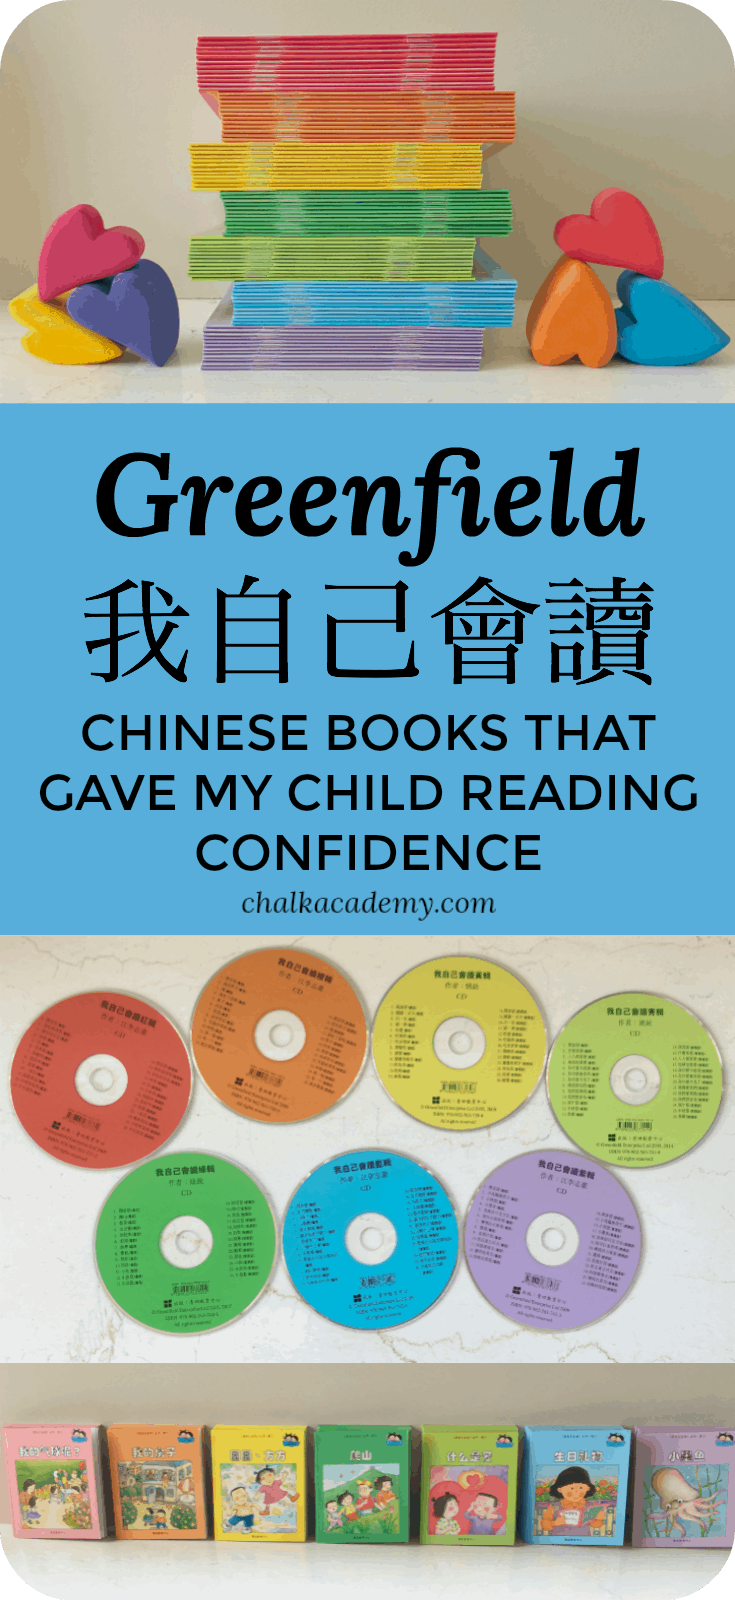 The Greenfield 我自己会读 I Can Read series has 96 short, humorous children's stories that are illustrated beautifully and build reading confidence.  The CDs give exposure to native Mandarin or Cantonese.  In addition, workbooks and flashcards are included. Chinese Picture Books   Leveled Readers   Preschool   Kindergarten   Homeschool   Mandarin Immersion